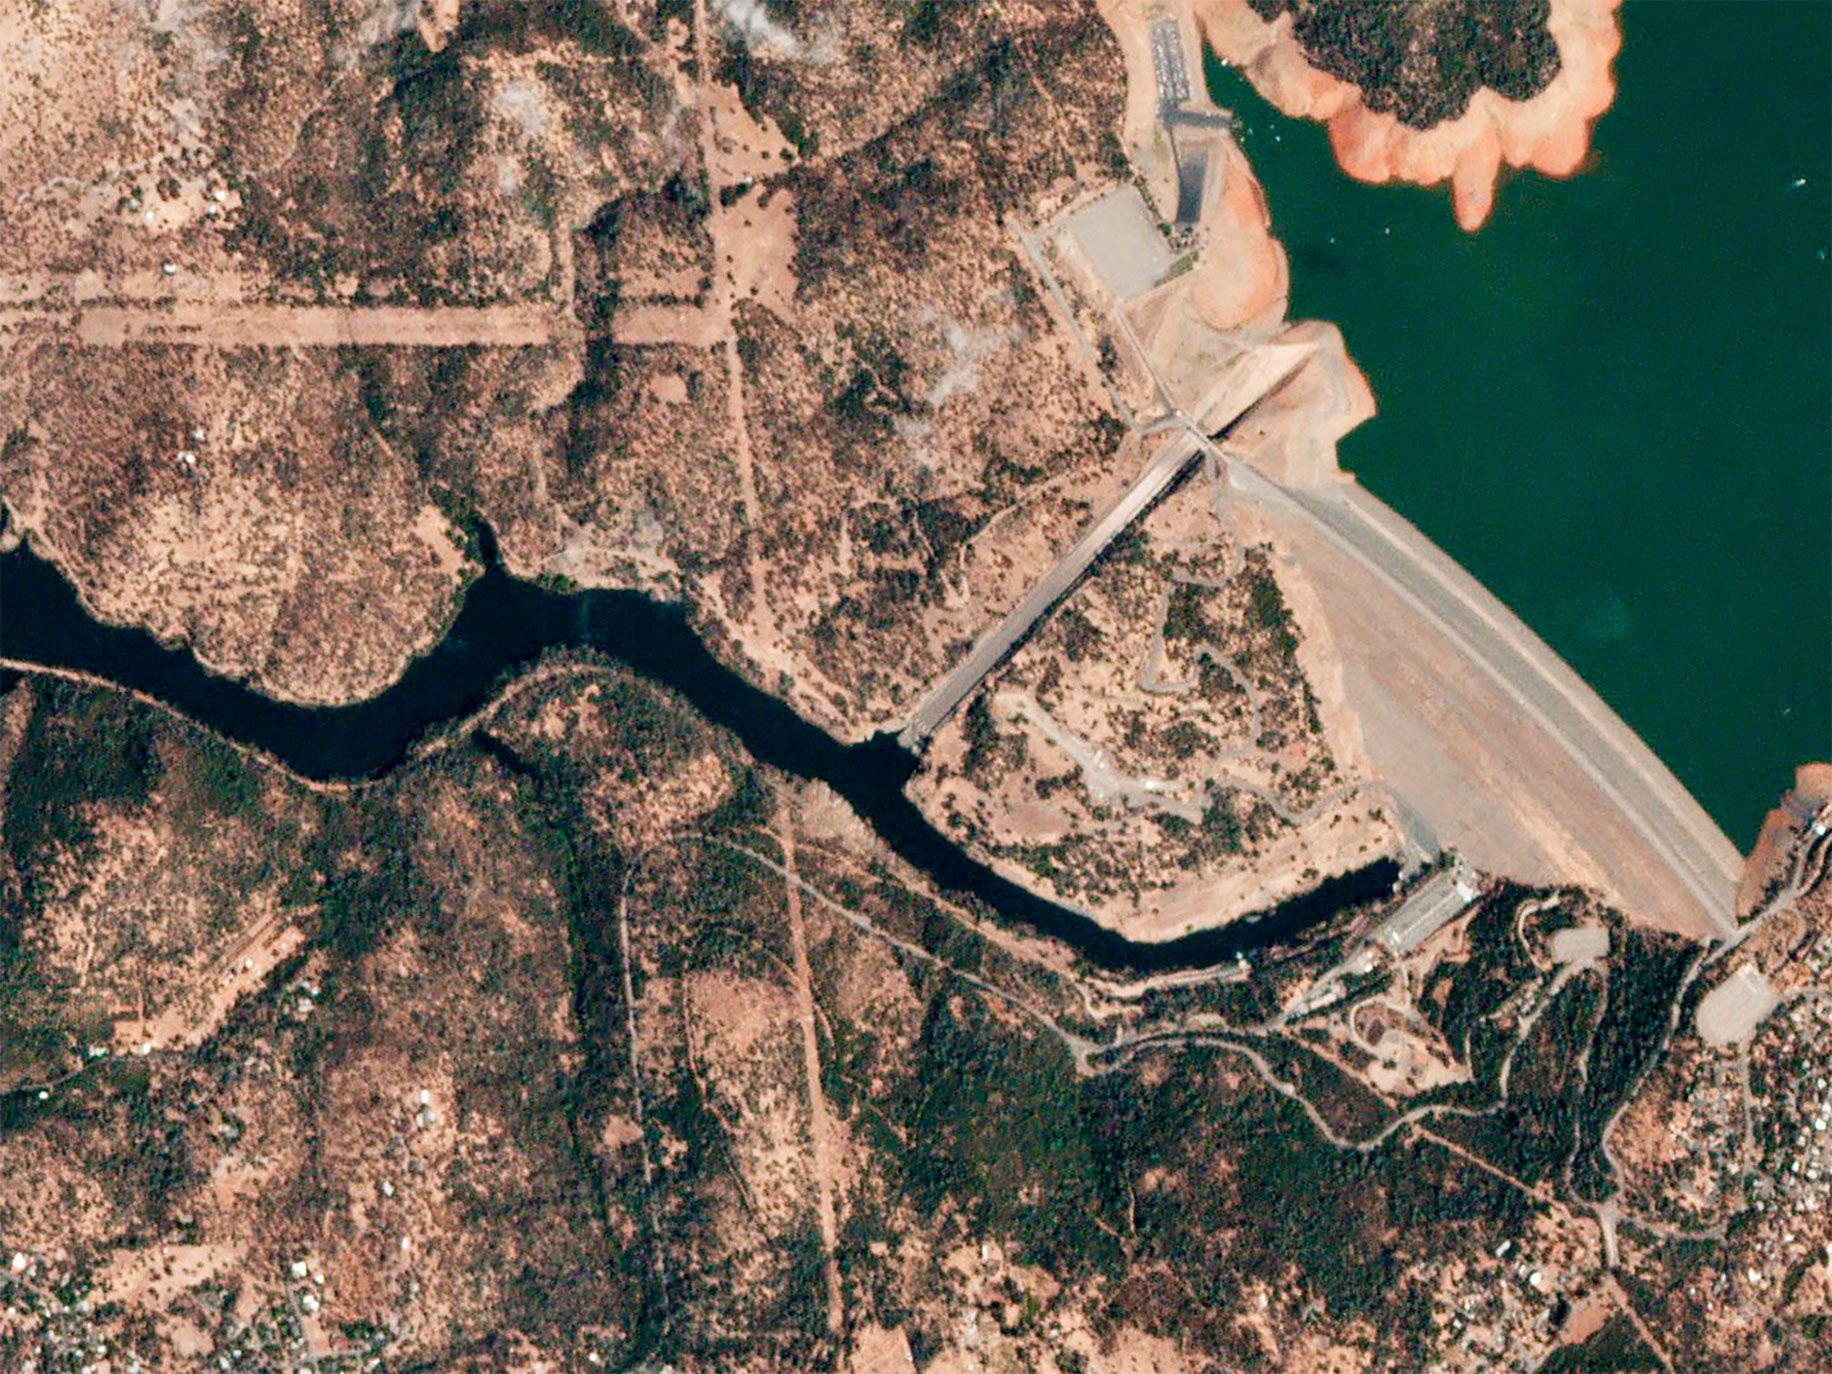 After several years of drought, winter rains filled reservoirs throughout California in February 2017. At the Oroville Dam (the tallest in the United States), water cascaded over the emergency spillway, eroding the surrounding hillside and threatening the town of Oroville and other communities along the Feather River. This satellite imagery sequence shows the dam in drought conditions (top); with water flowing over the damaged spillway during the crisis (middle); and after water levels lowered (bottom).